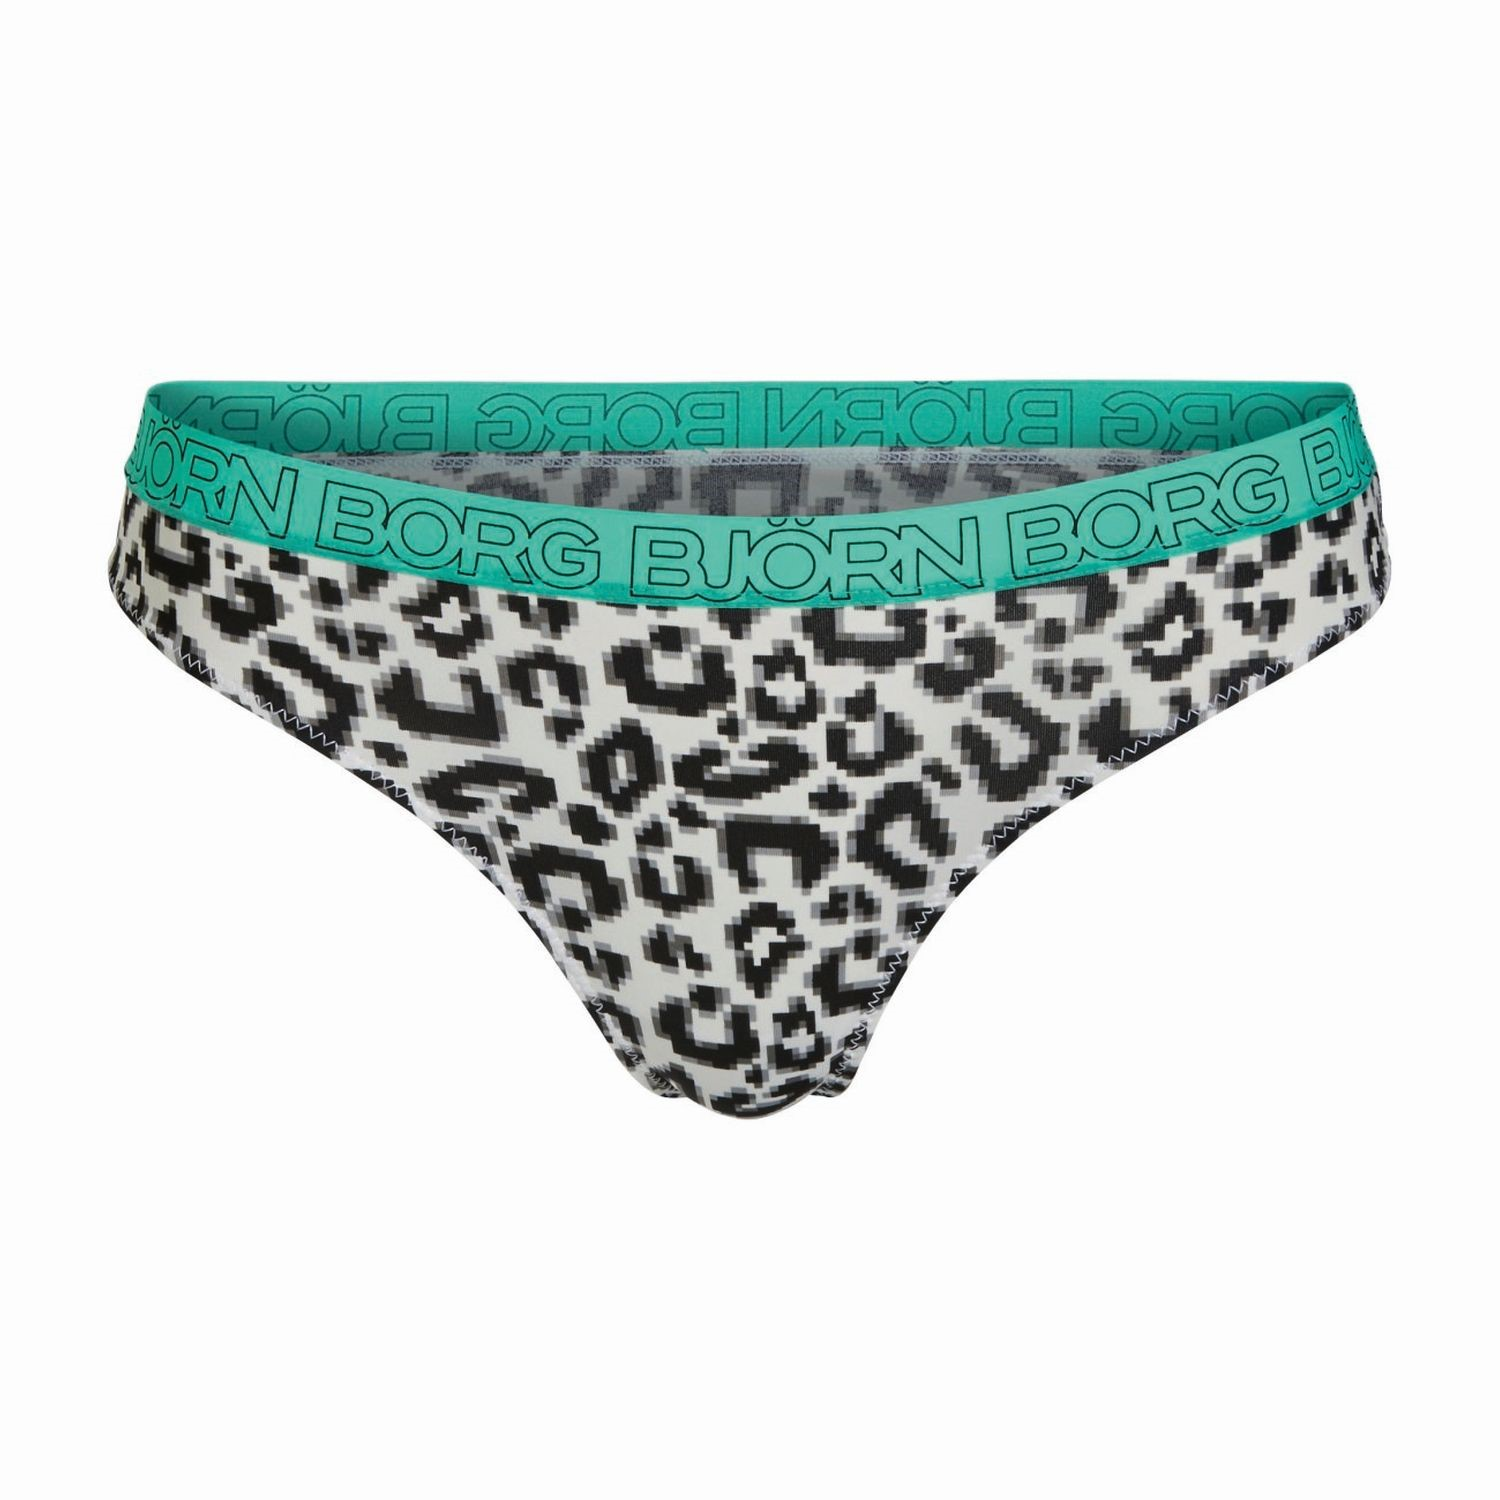 eea971bdeaf Björn Borg Love All String Micro Leopard - Briefs - Underwear ...